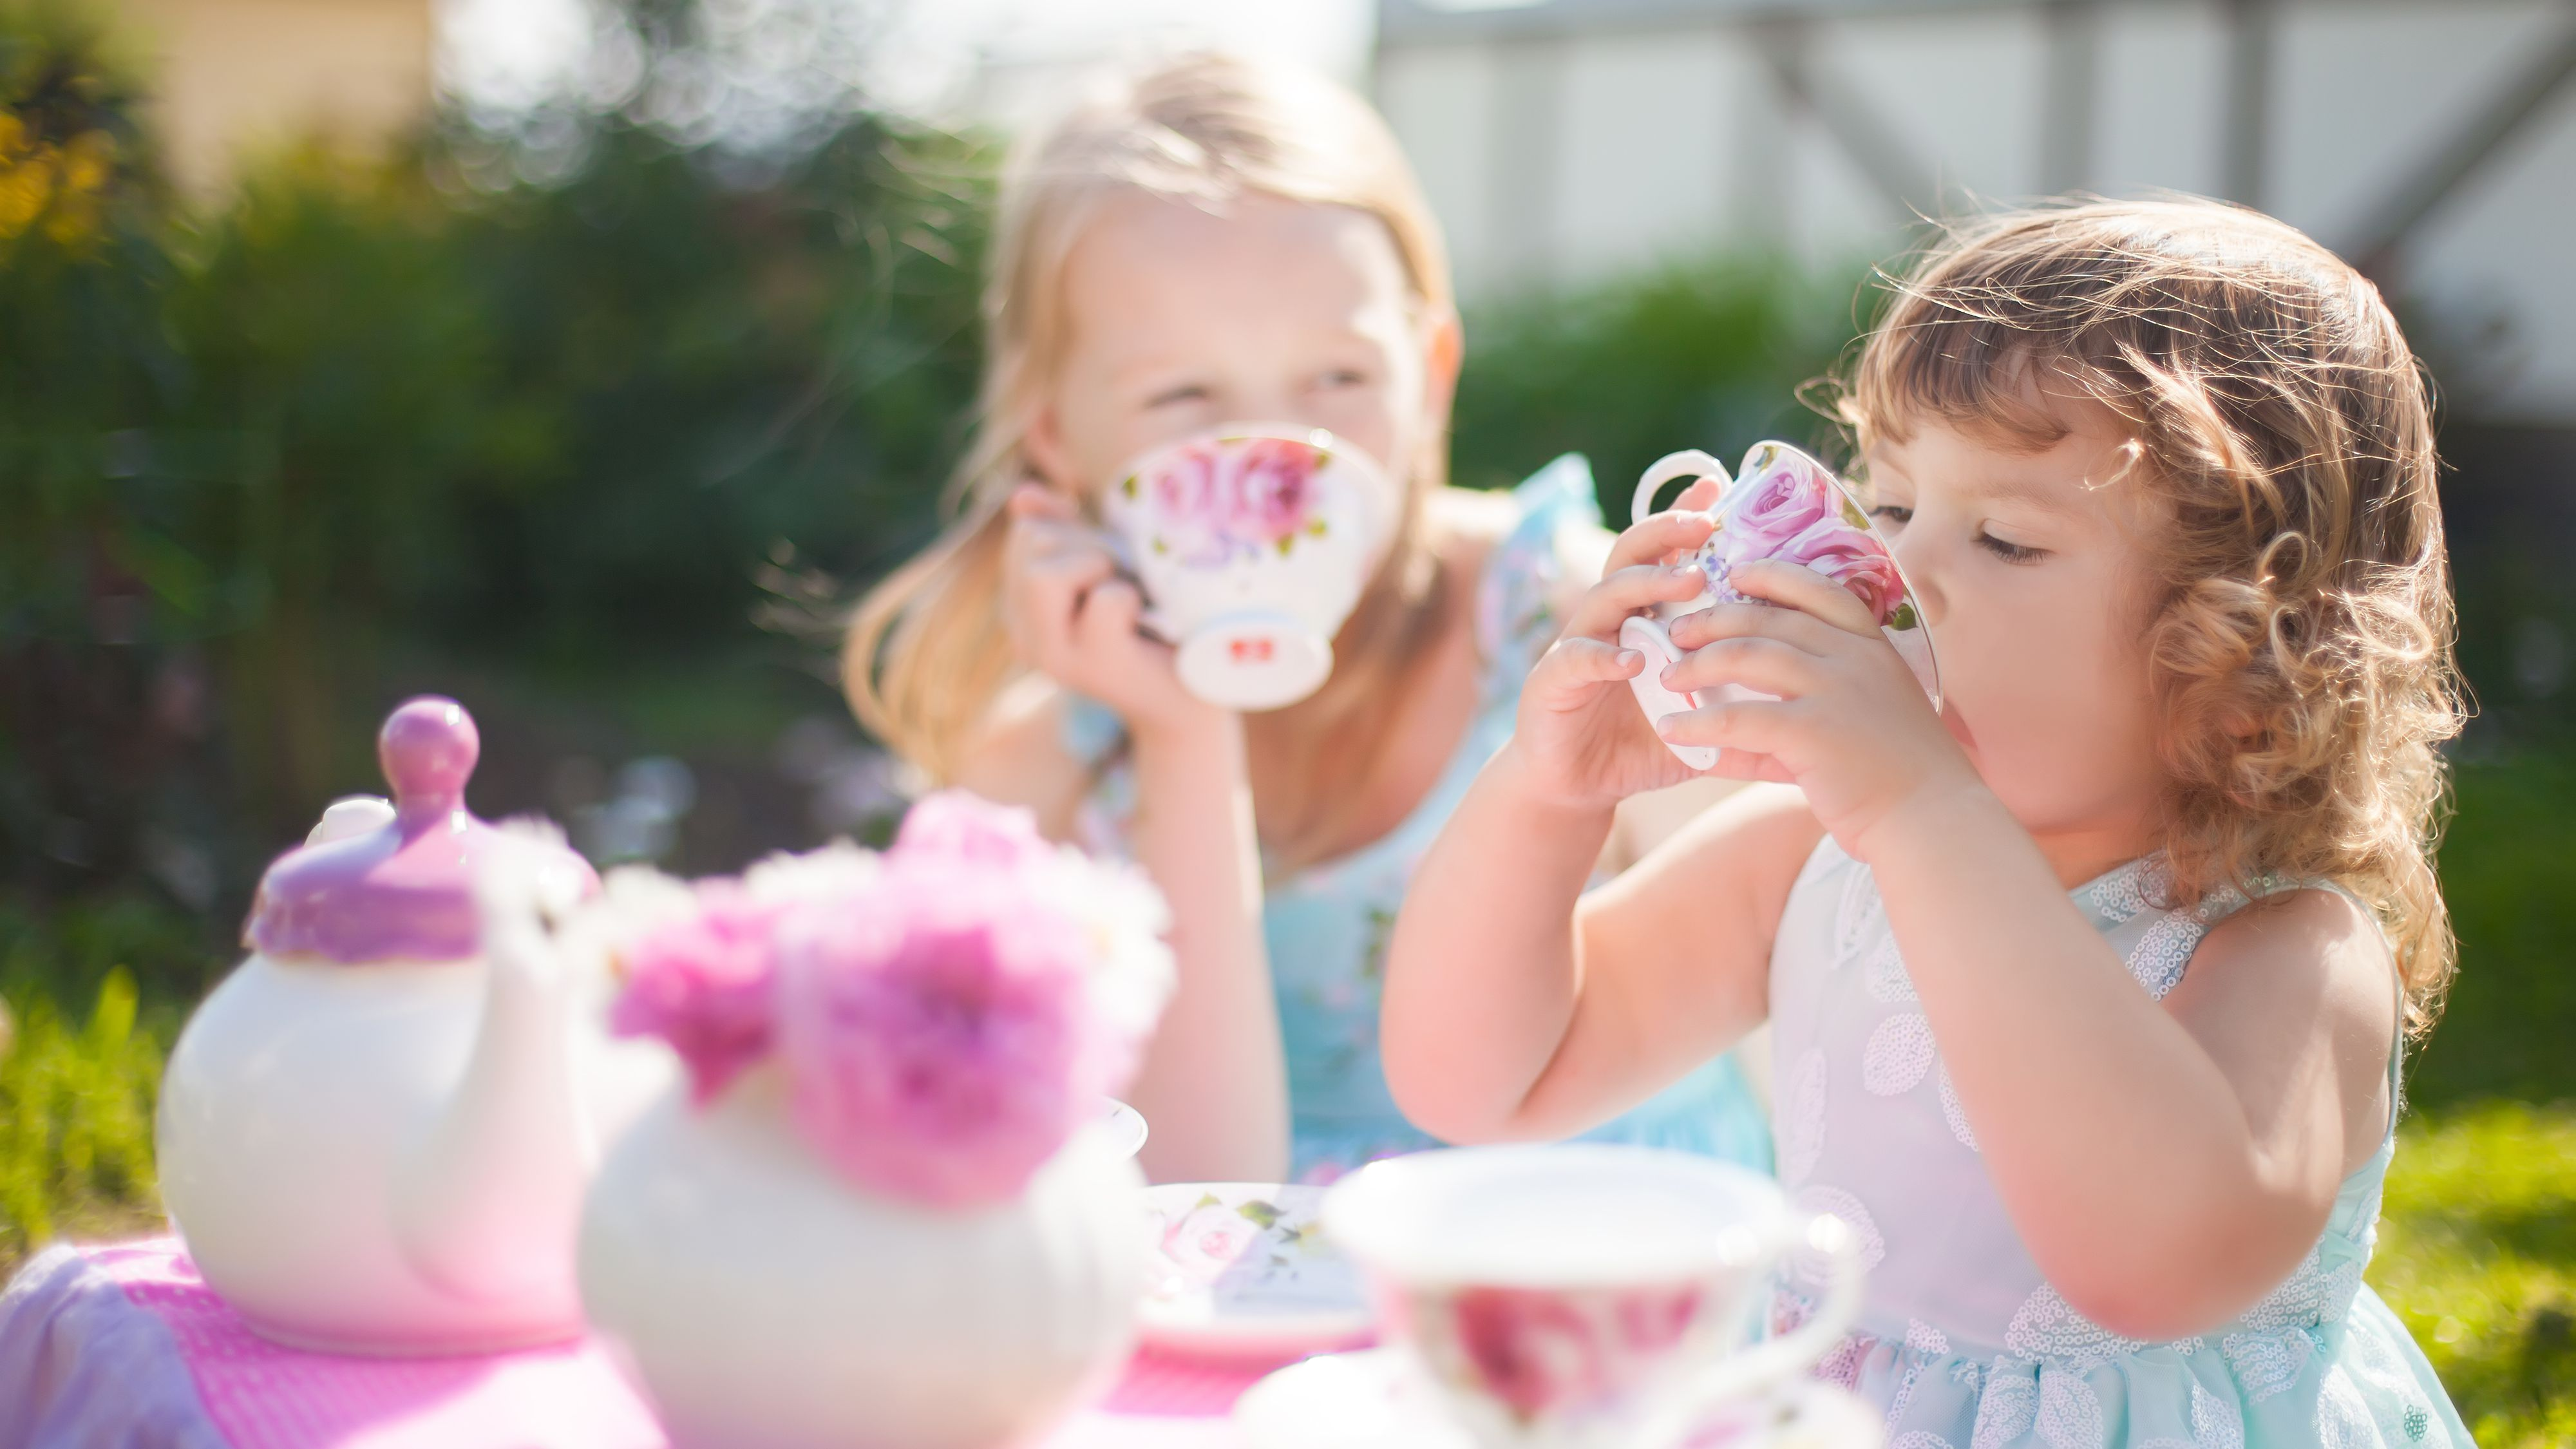 Party Cupcake Decorating Items-Great for Decorative Garden Tea Party Tea Party,